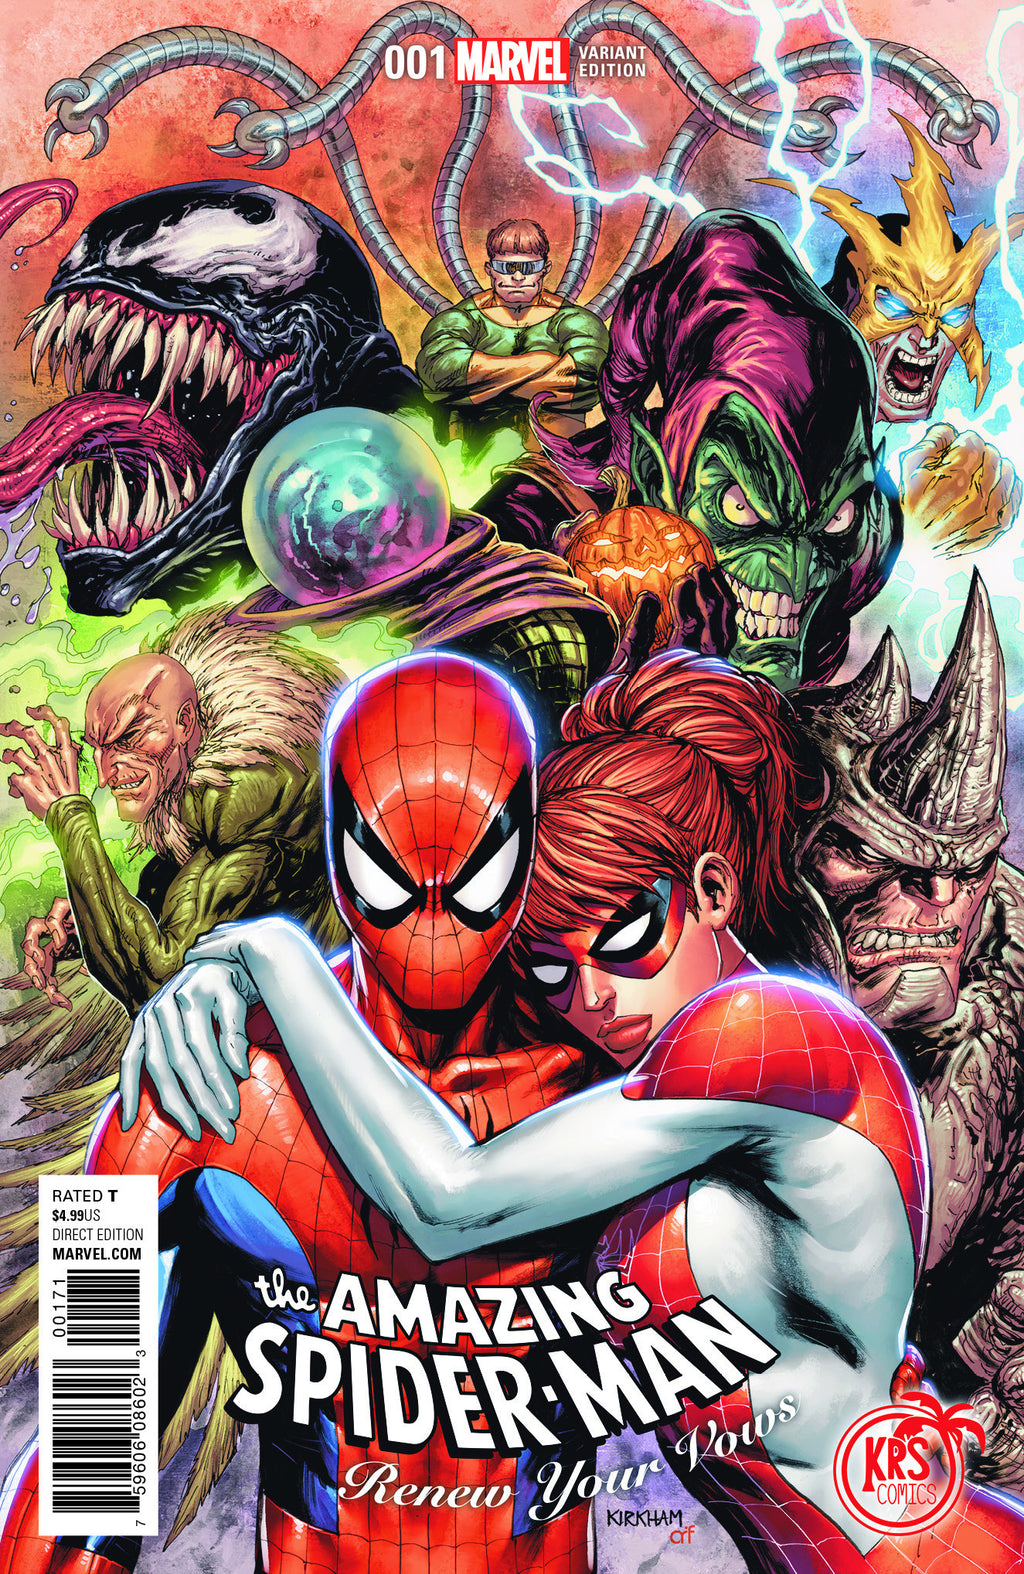 AMAZING SPIDER-MAN RENEW YOUR VOWS #1 KRS COMICS EXCLUSIVE TYLER KIRKHAM VARIANTS